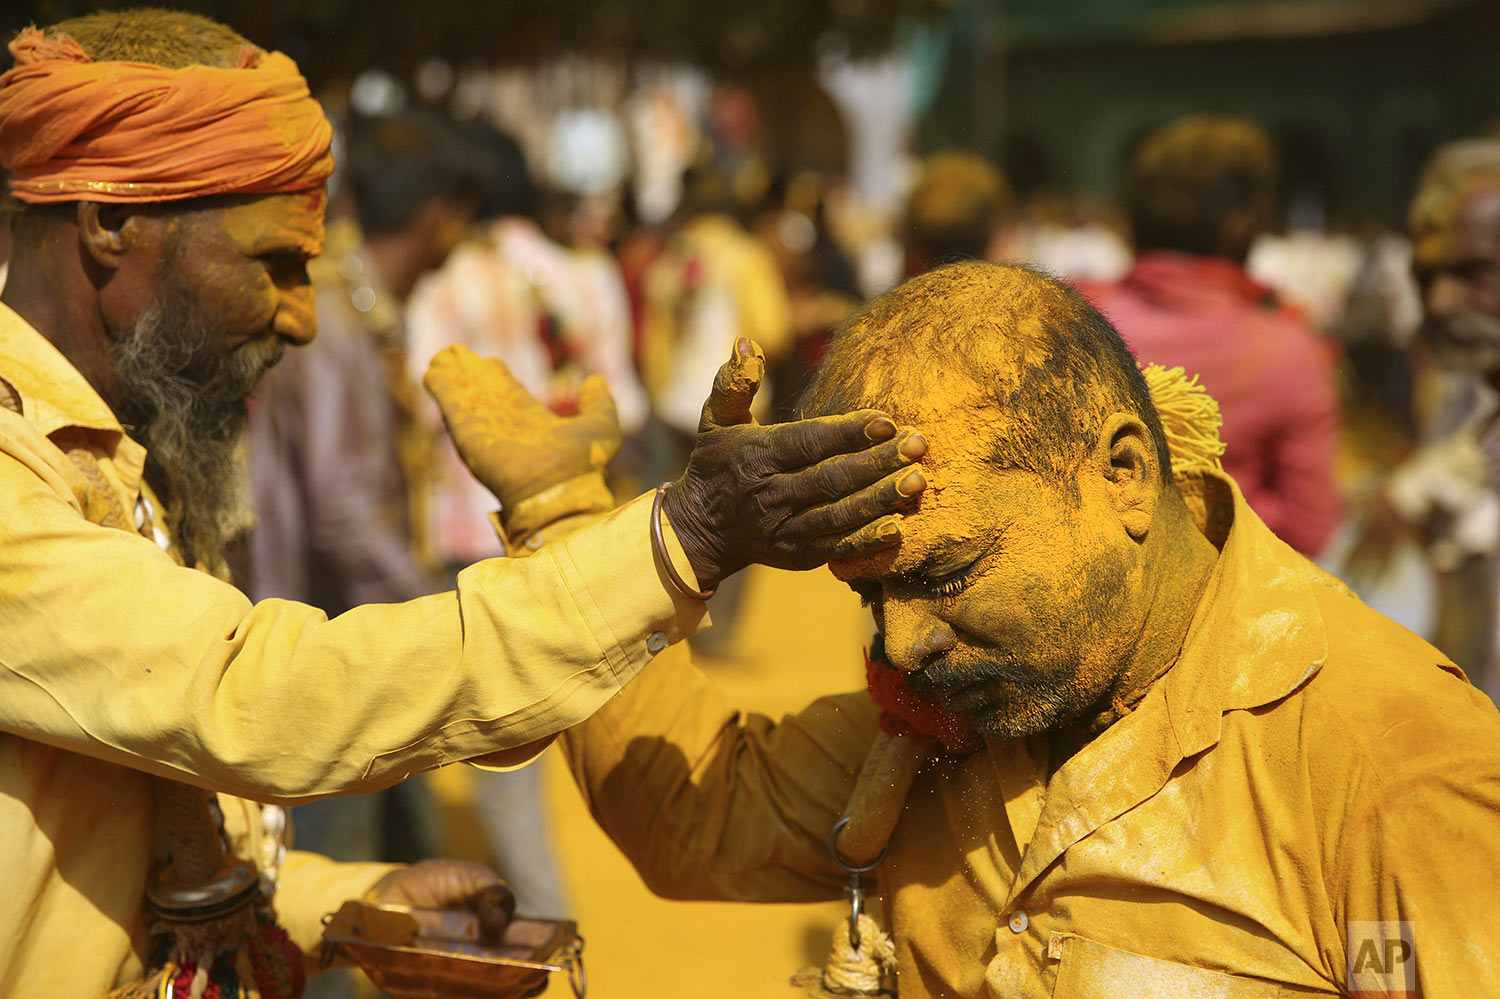 A devotee applies the spice turmeric during the celebration of the Bhandara Festival, or the Festival of Turmeric, at the Jejuri temple in Pune district, Maharashtra state, India, Monday, June 3, 2019. (AP Photo/Rafiq Maqbool)